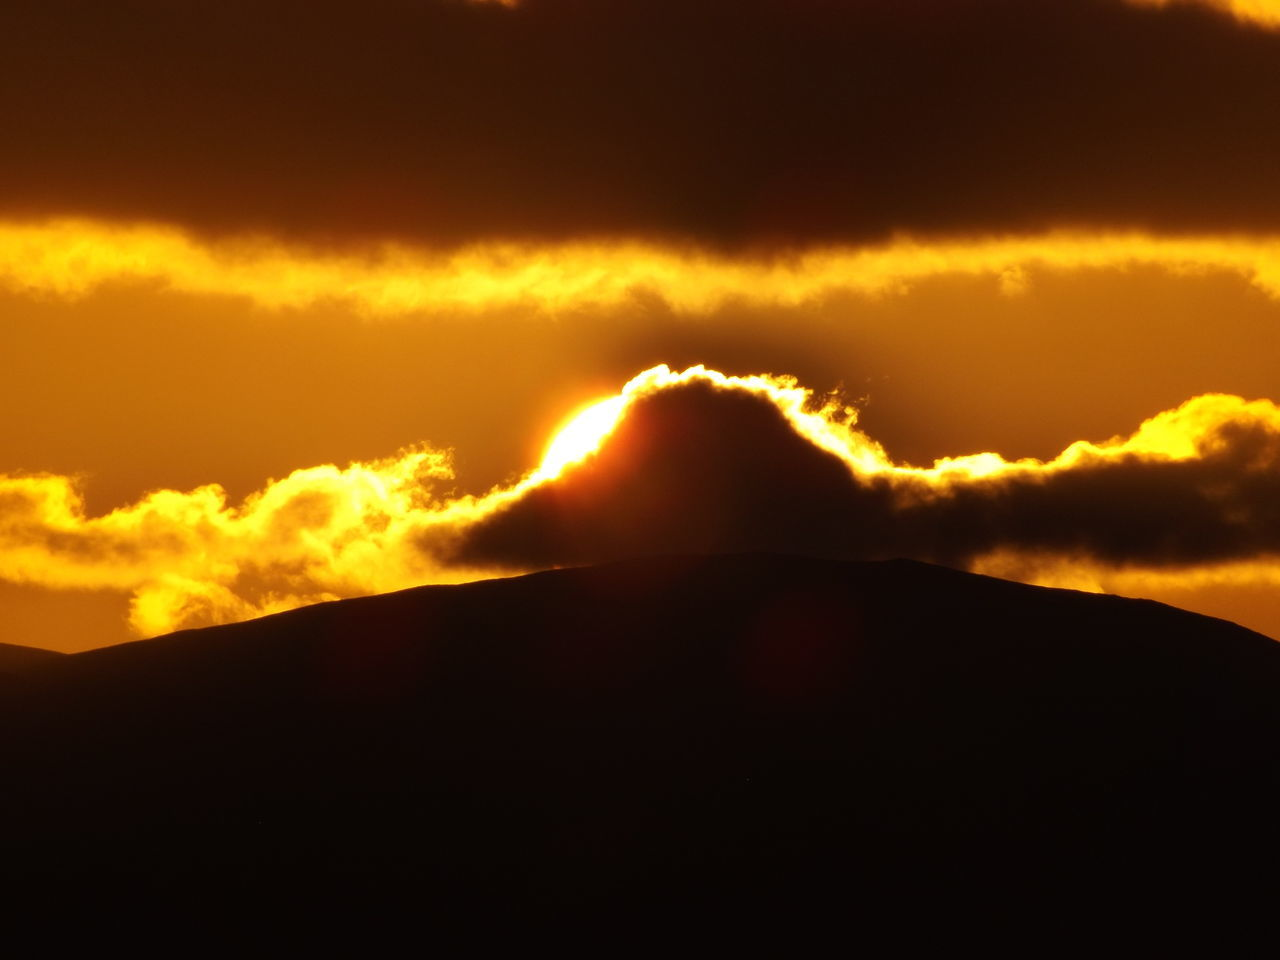 Beauty In Nature Black Close-up Cloud Clouds And Sky Gold Heat - Temperature Isle Of Arran  Moment Mountain Nature No People Orange Outdoors Power In Nature Romantic Scenics Scotland Silhouette Sky Sun Sunset Sunset Silhouettes Sunset_collection